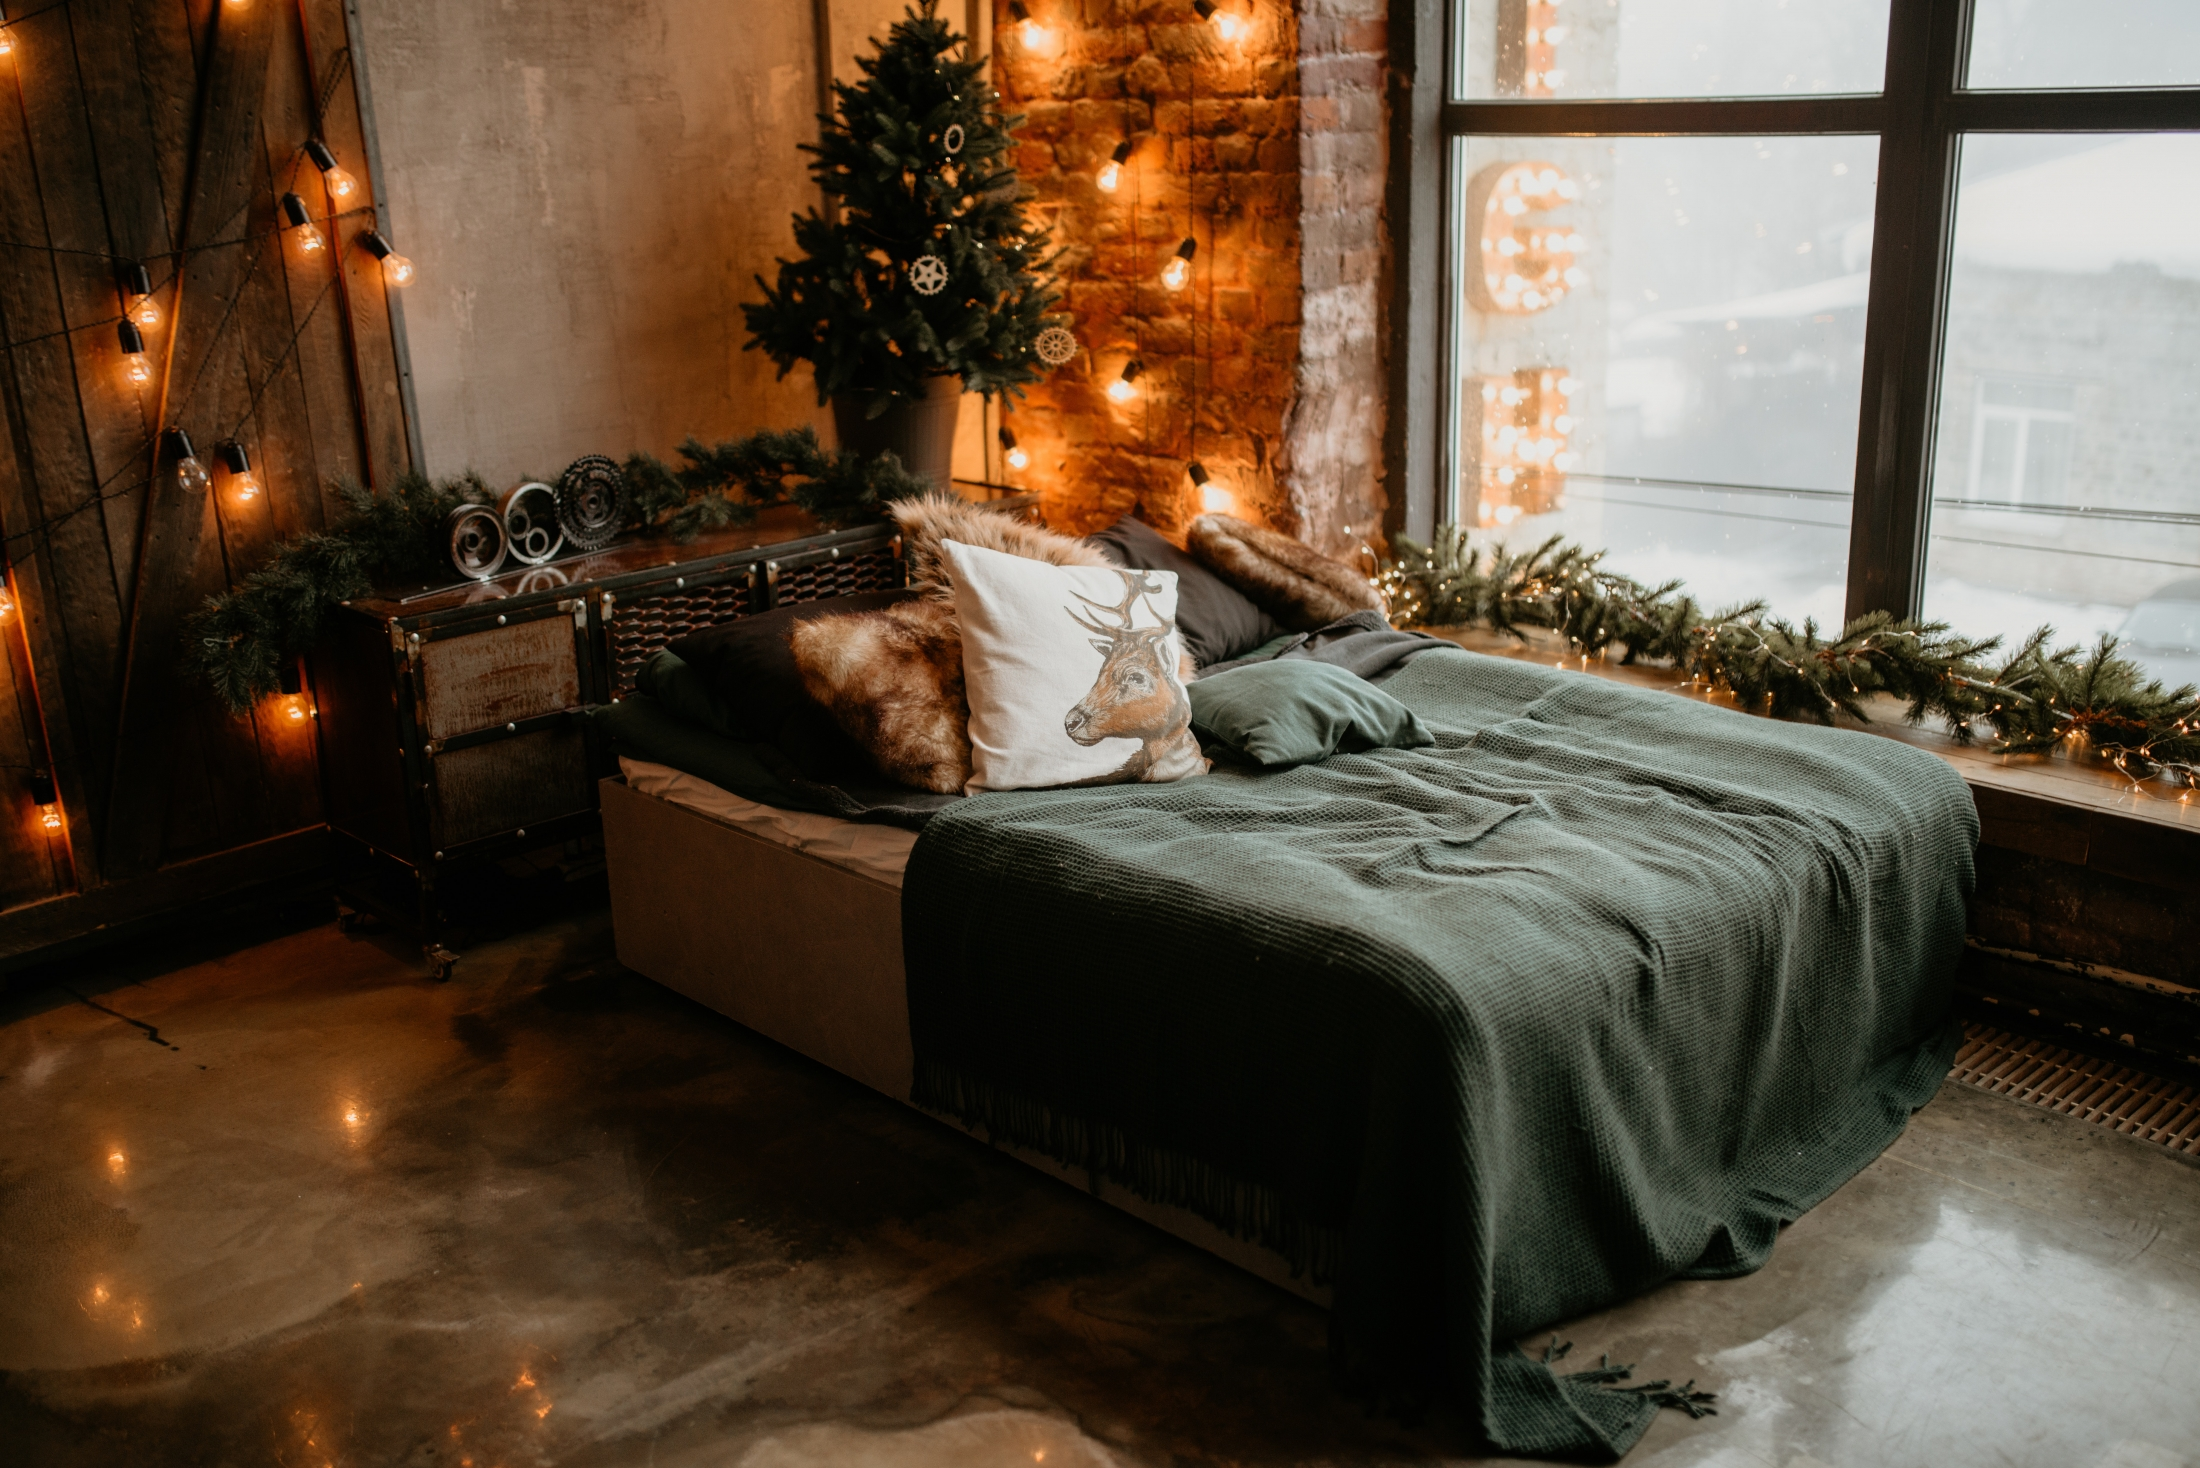 How to Make Your Home Cozy in Winter